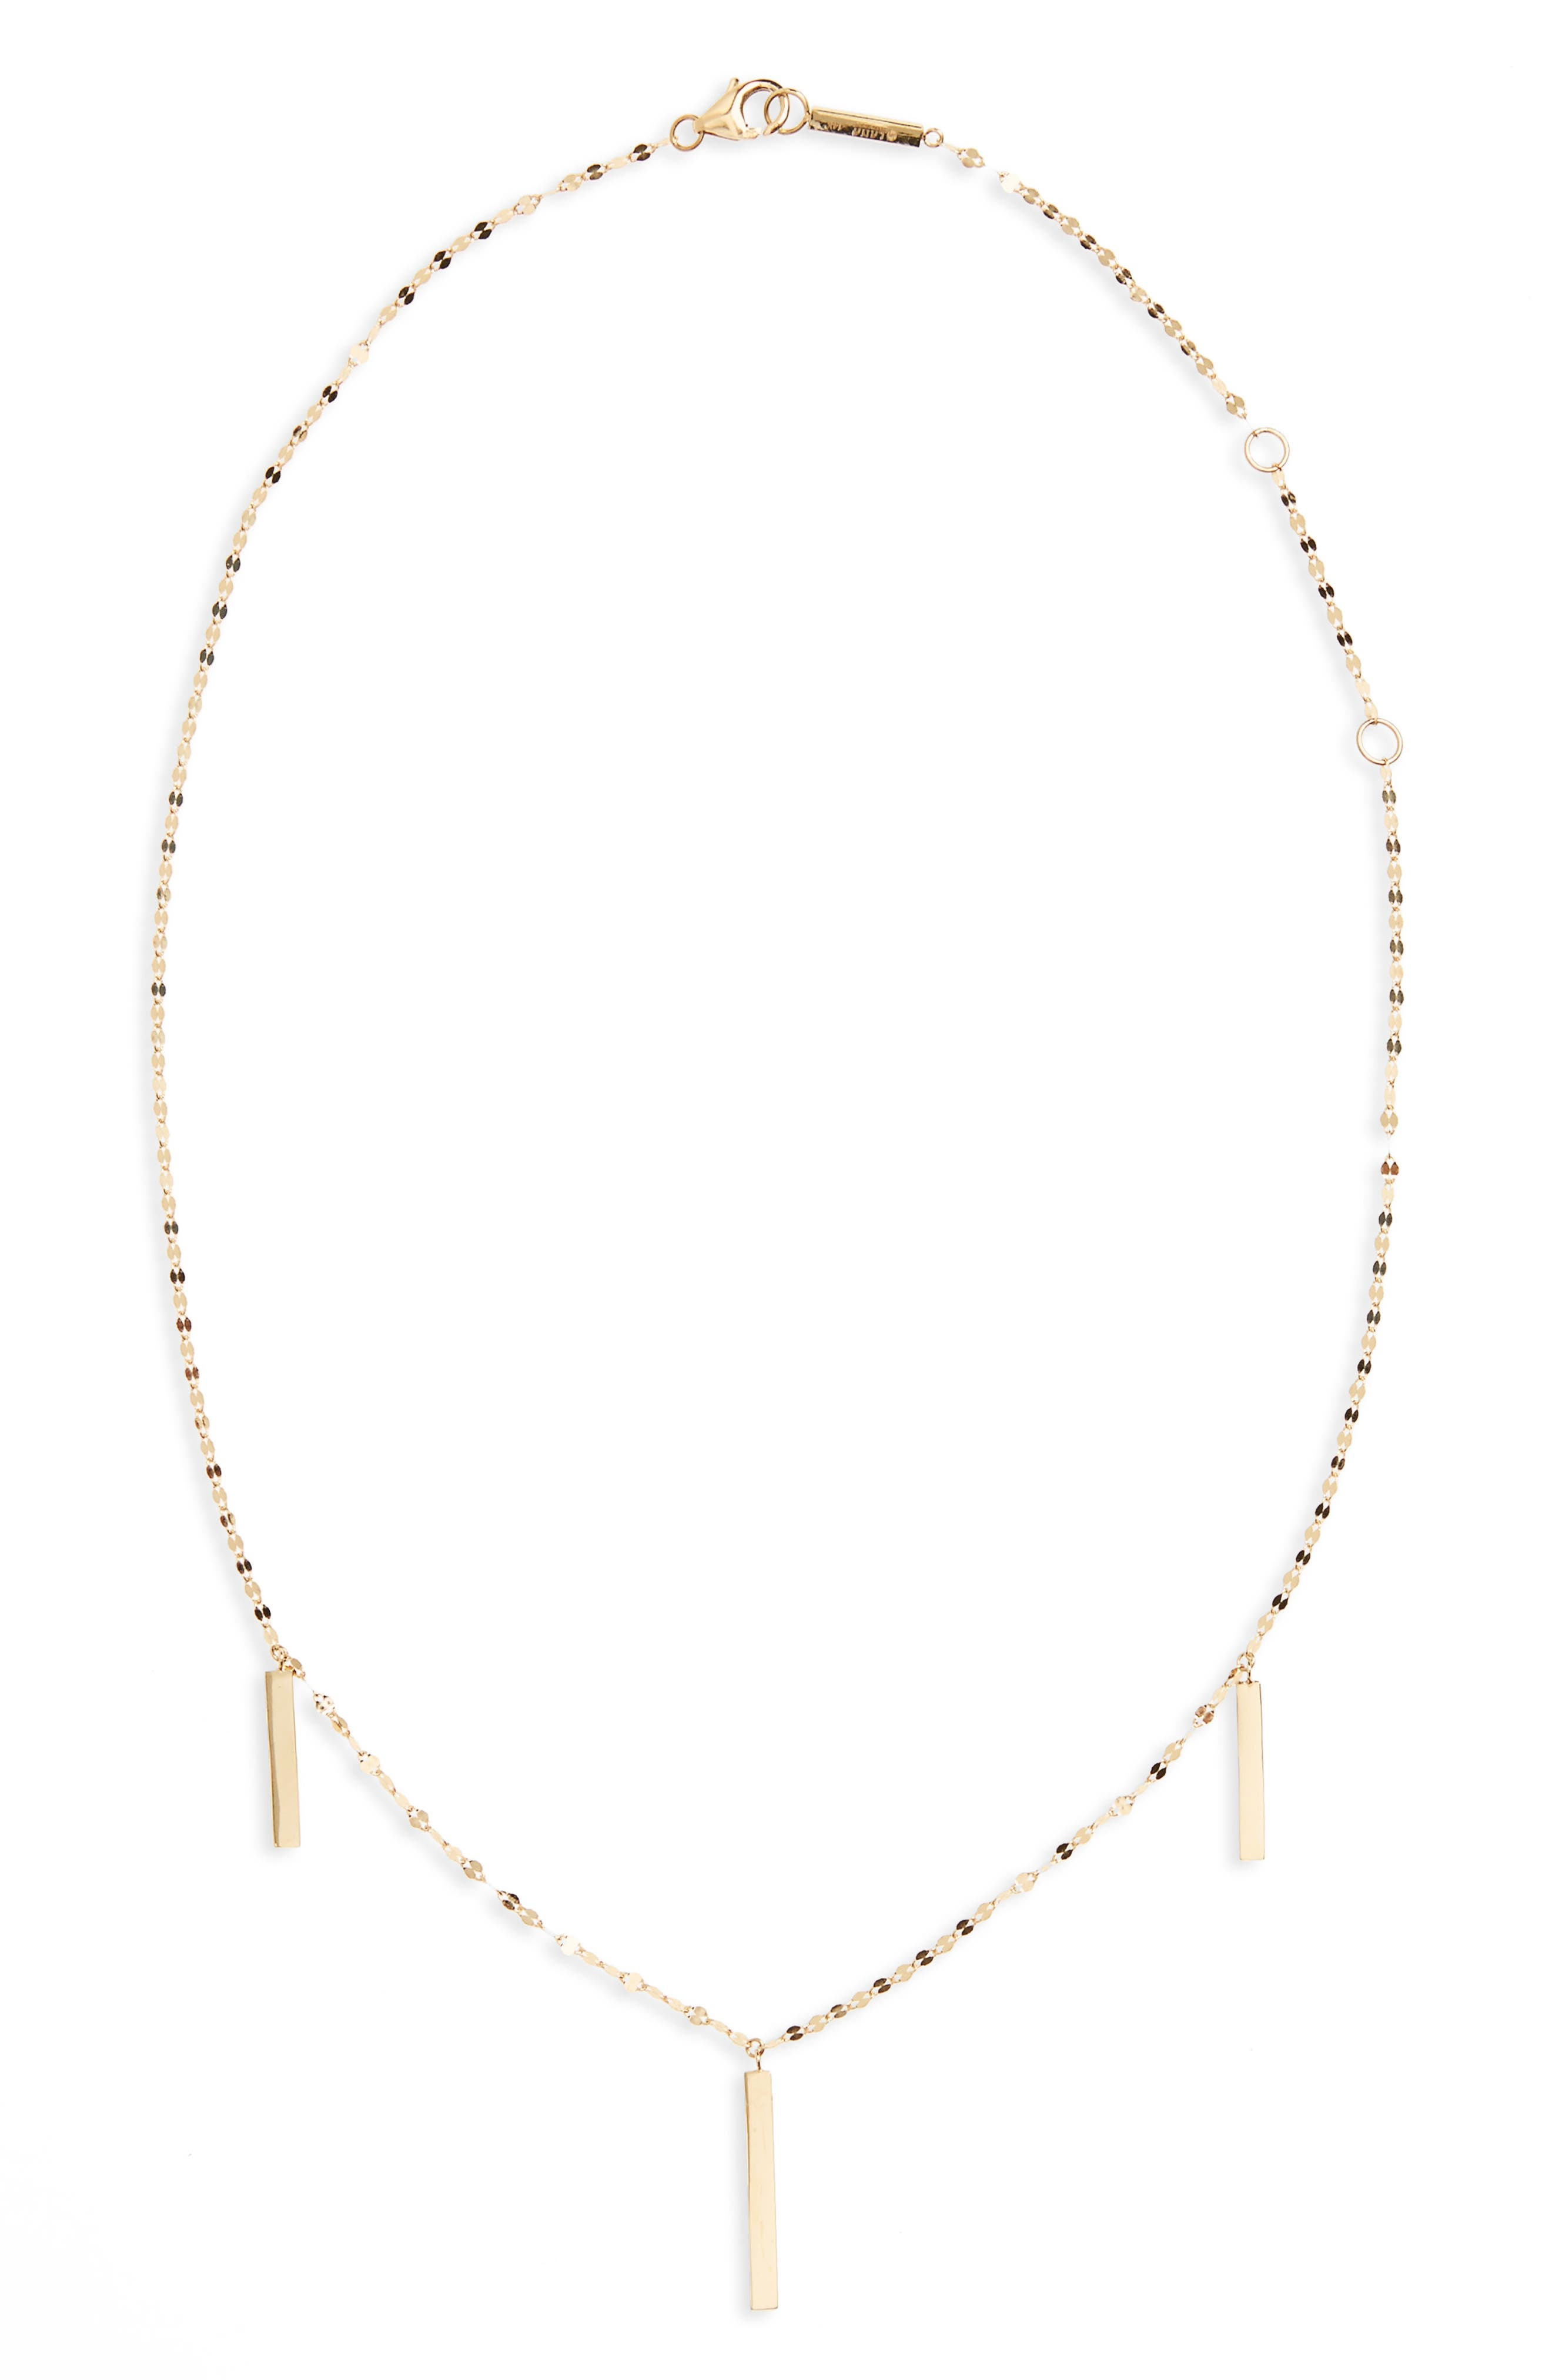 LANA JEWELRY,                             Station Necklace,                             Main thumbnail 1, color,                             710